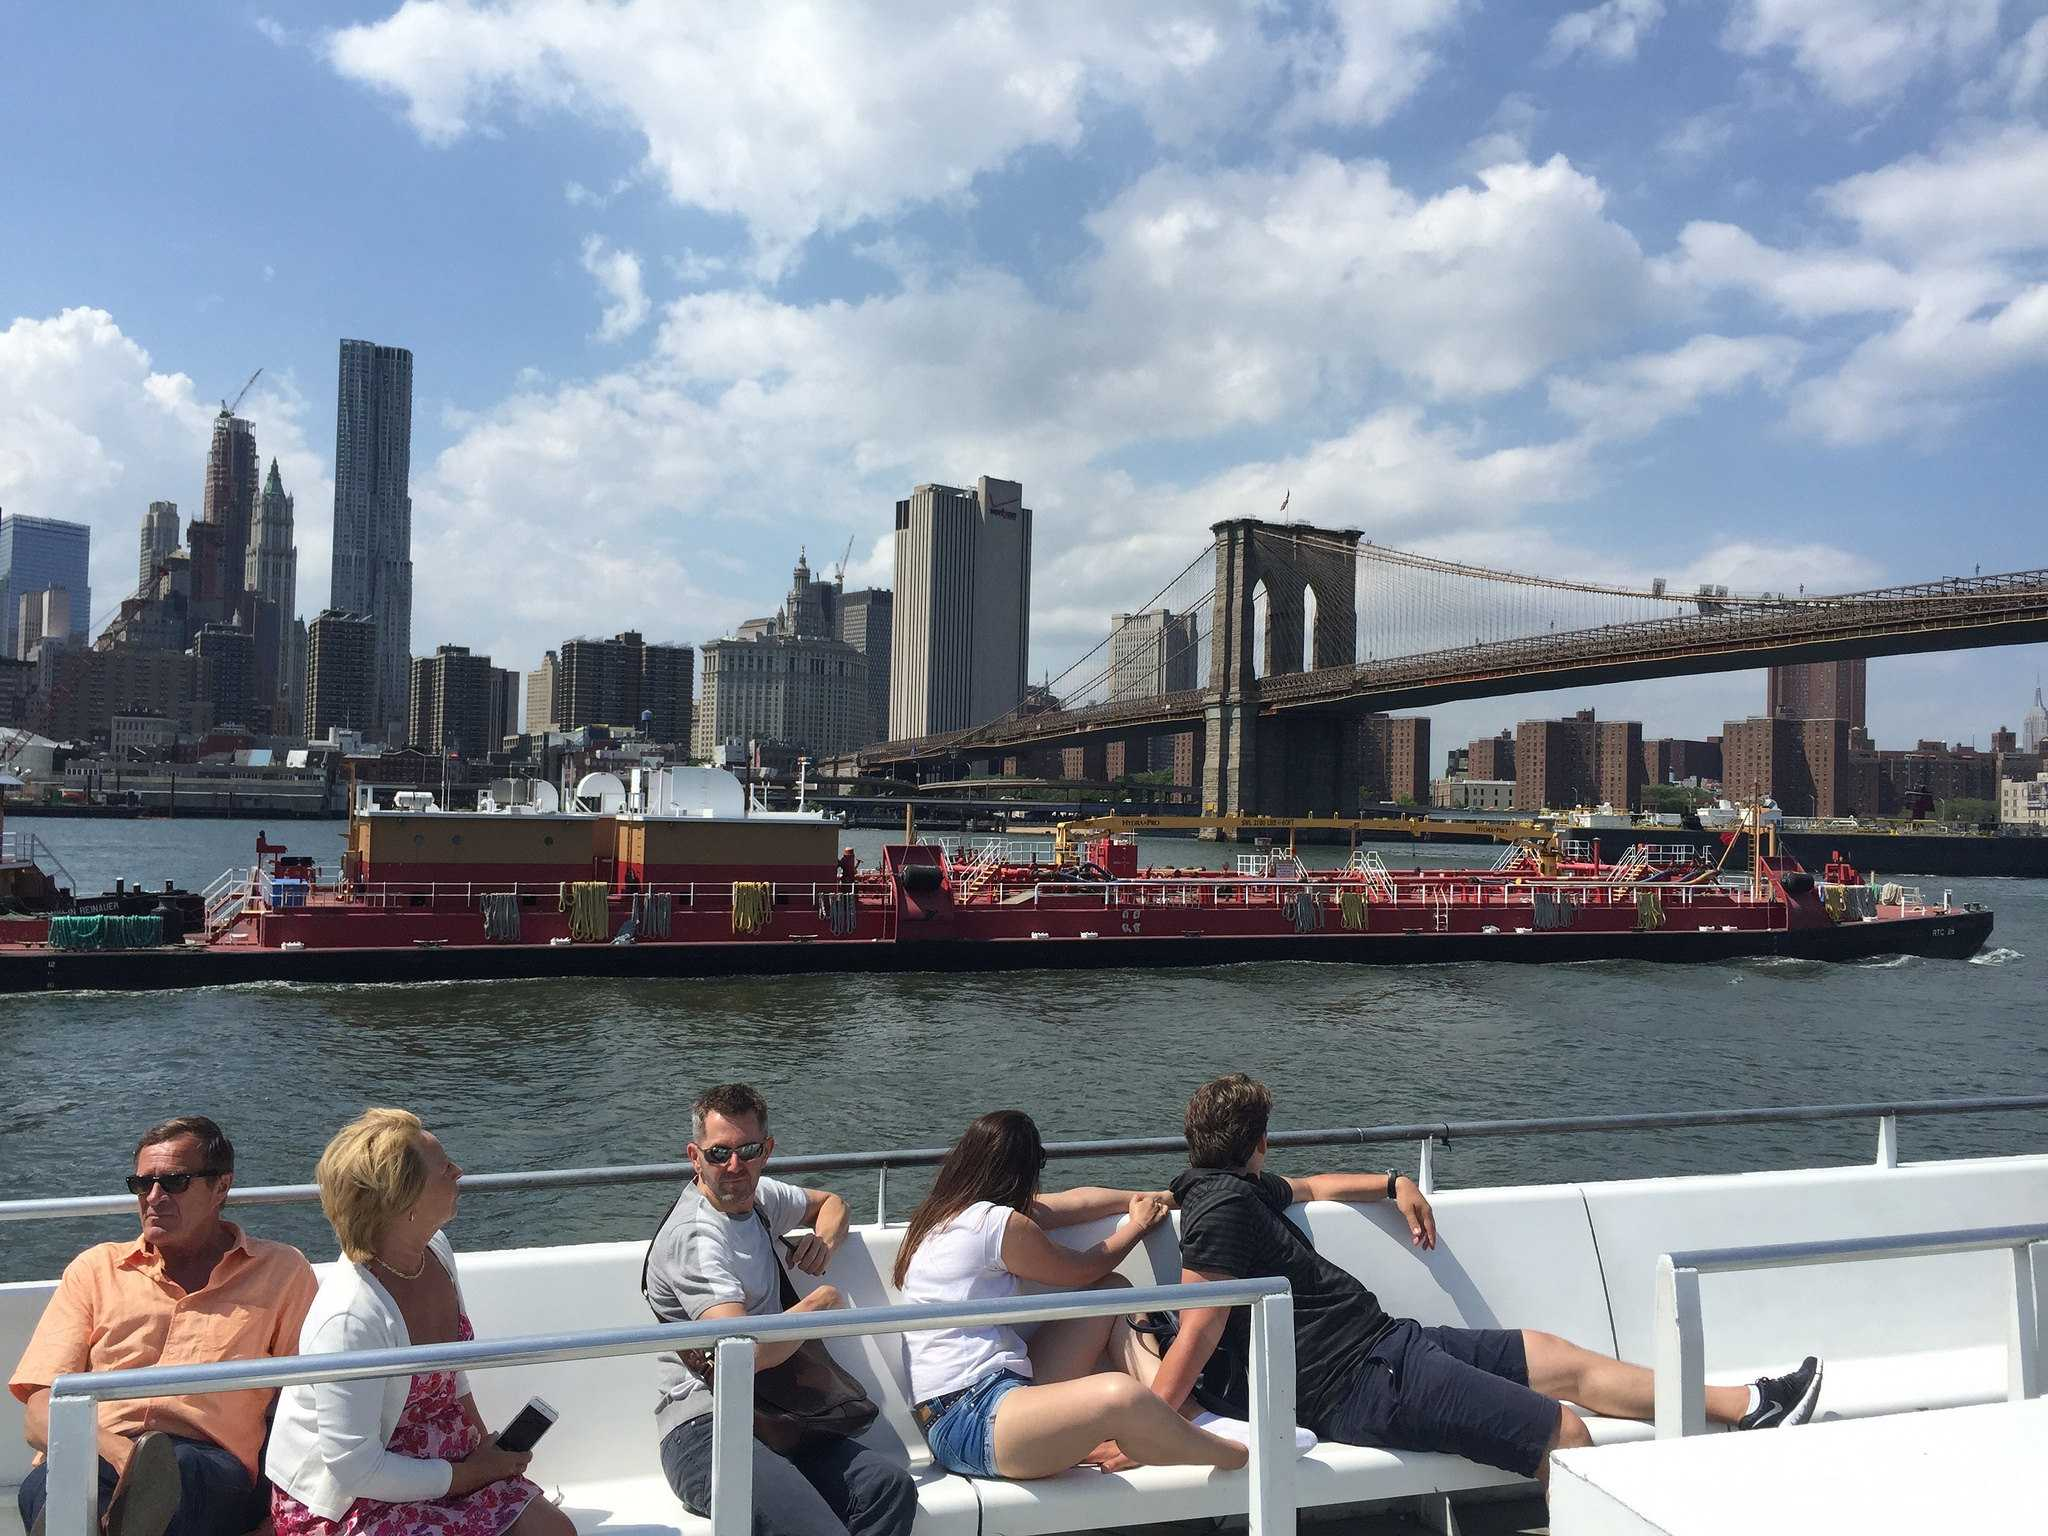 People riding on a boat past the brooklyn bridge